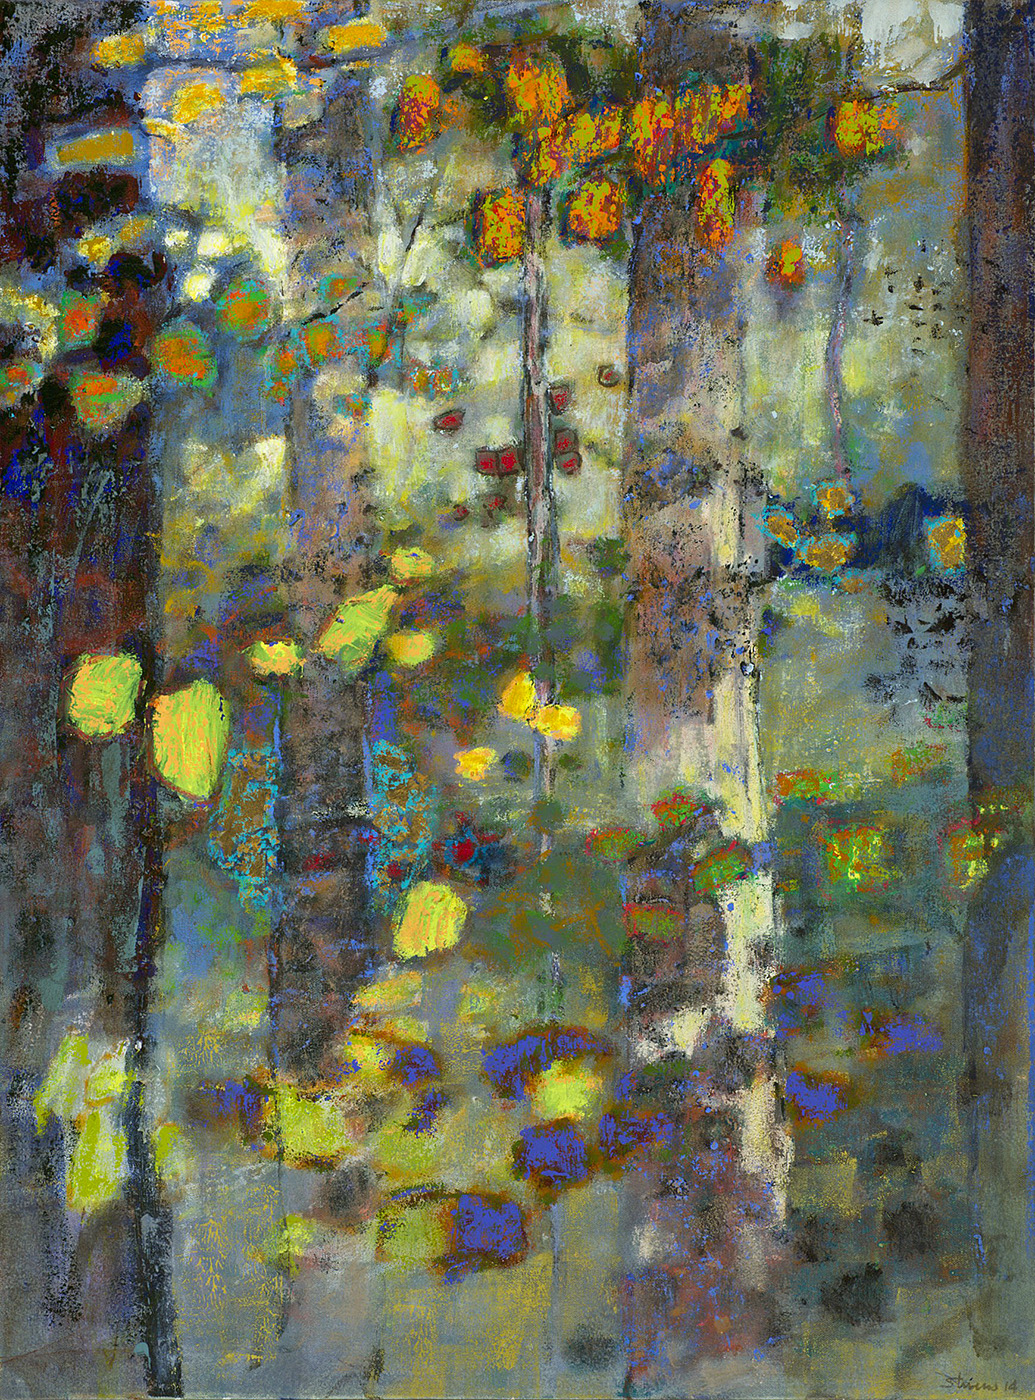 When All Was Wild III   | oil on canvas | 36 x 27"